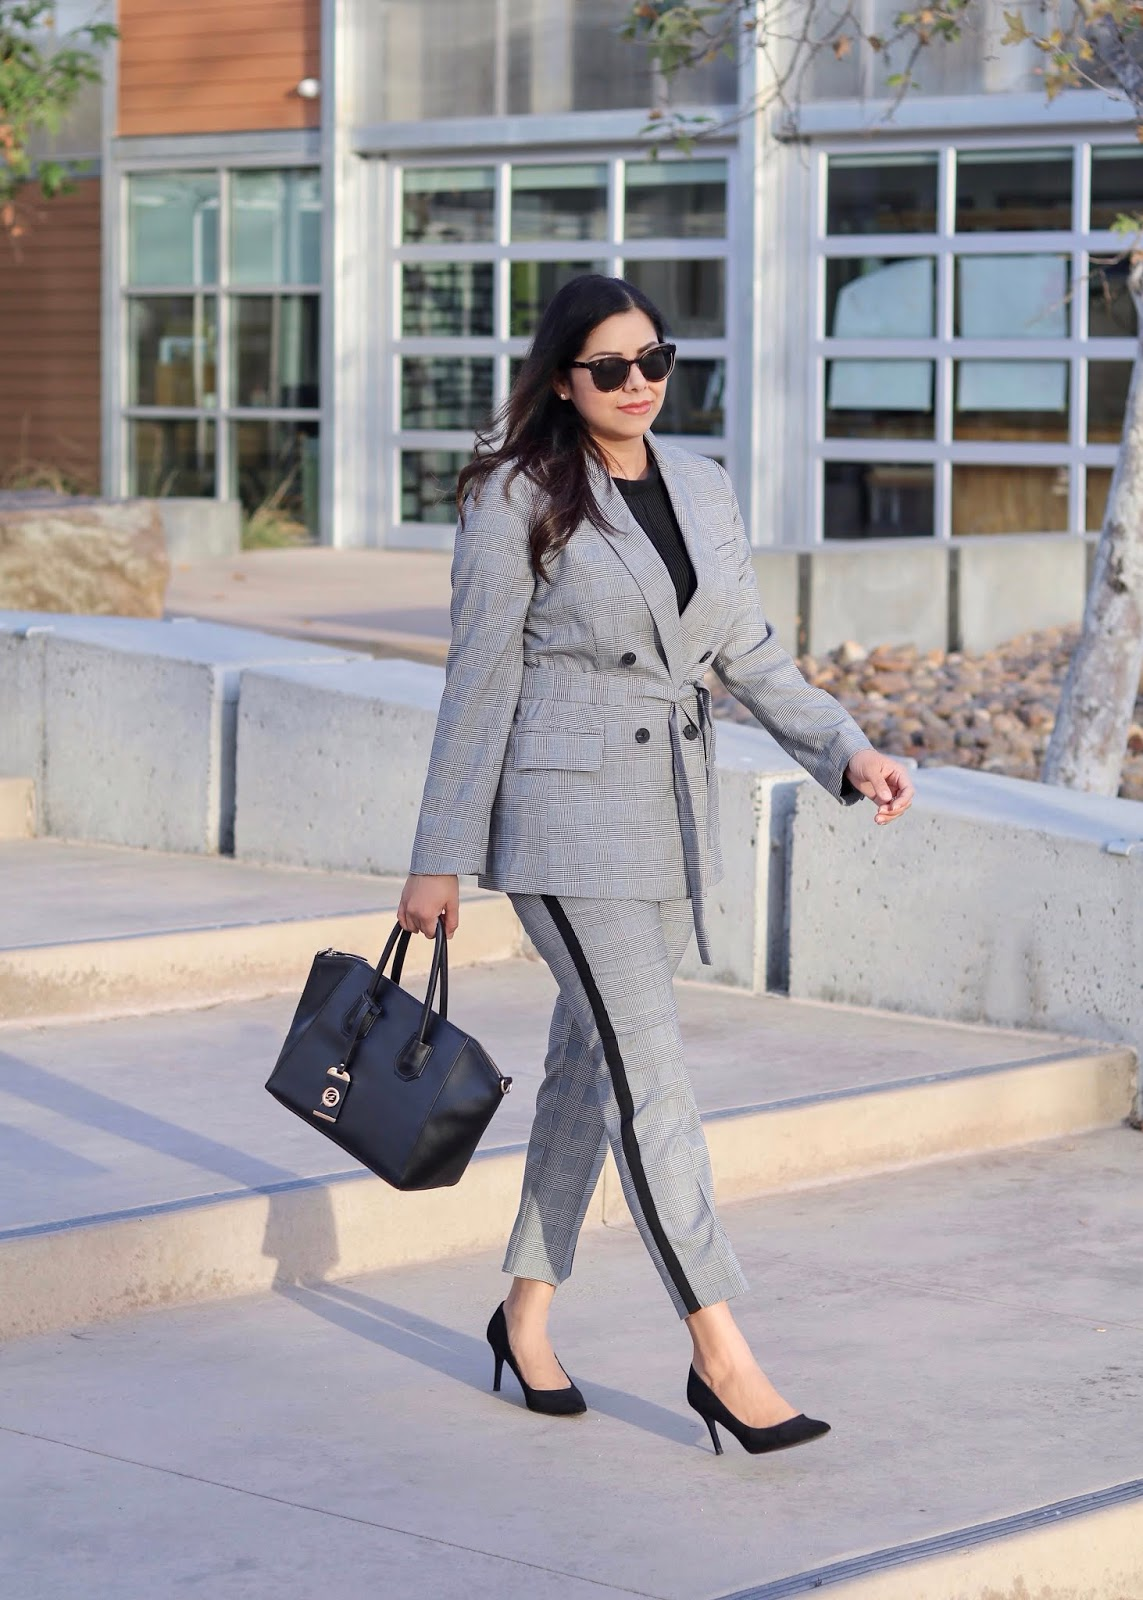 modern women business suit, off the rack suits for women, modern suits for women